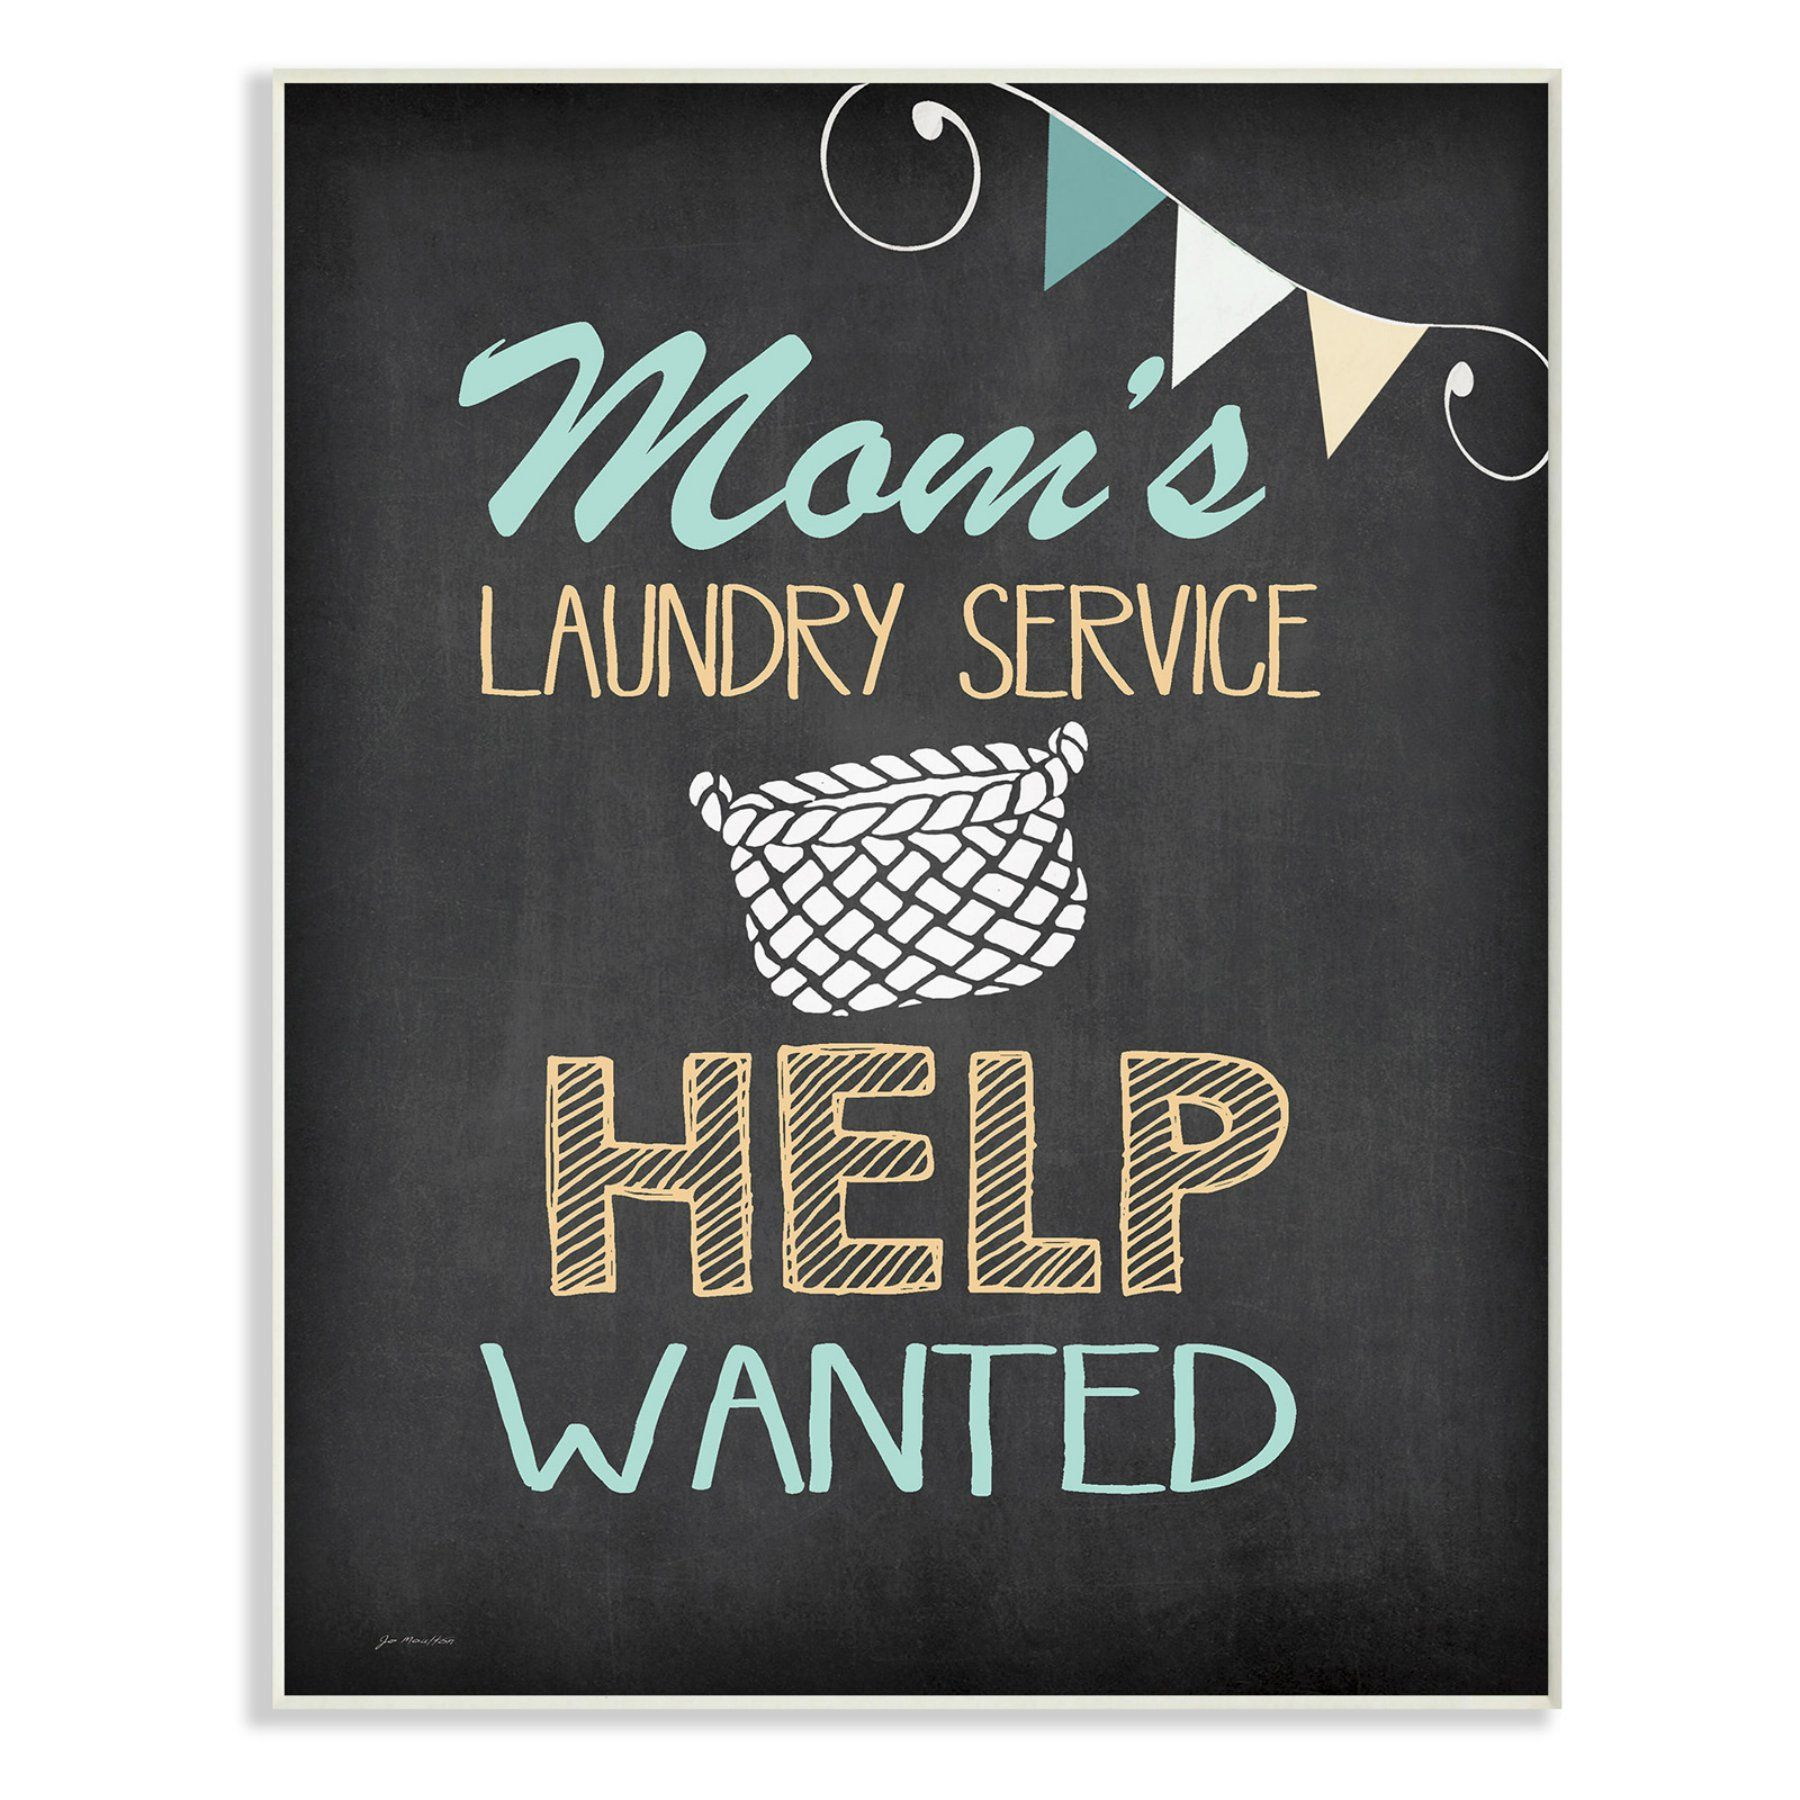 Laundry Wall Plaque Magnificent Stupell Decor Moms Laundry Service Help Wanted Wall Plaque  Wrp Decorating Inspiration